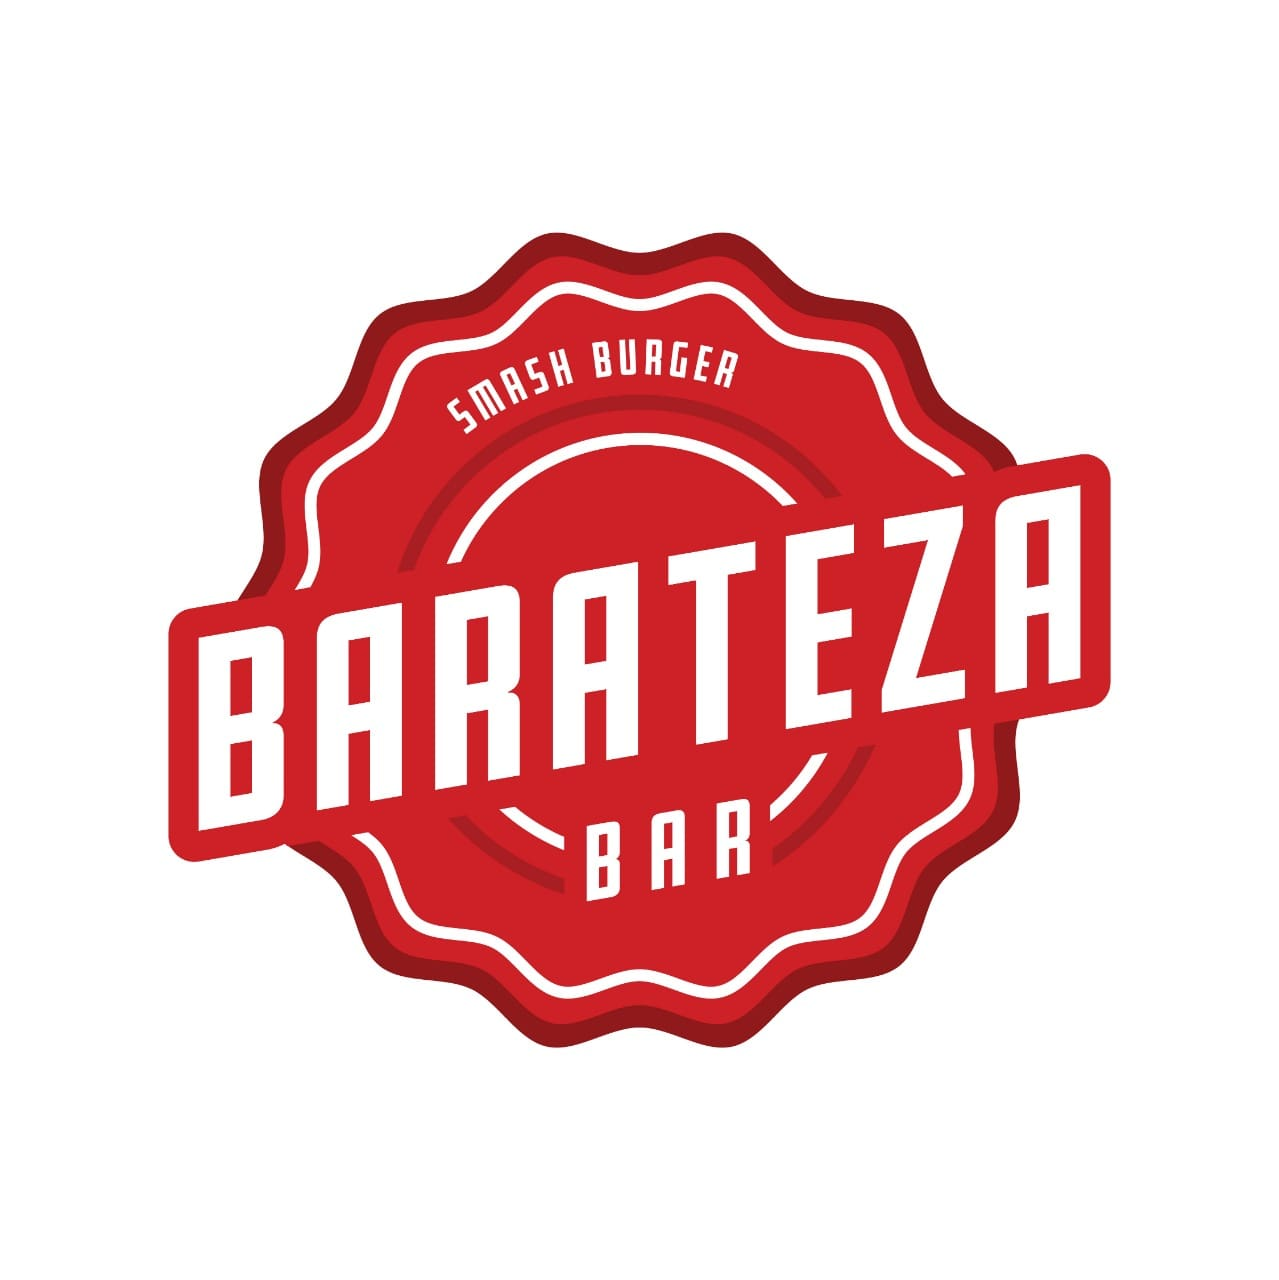 Barateza Bar